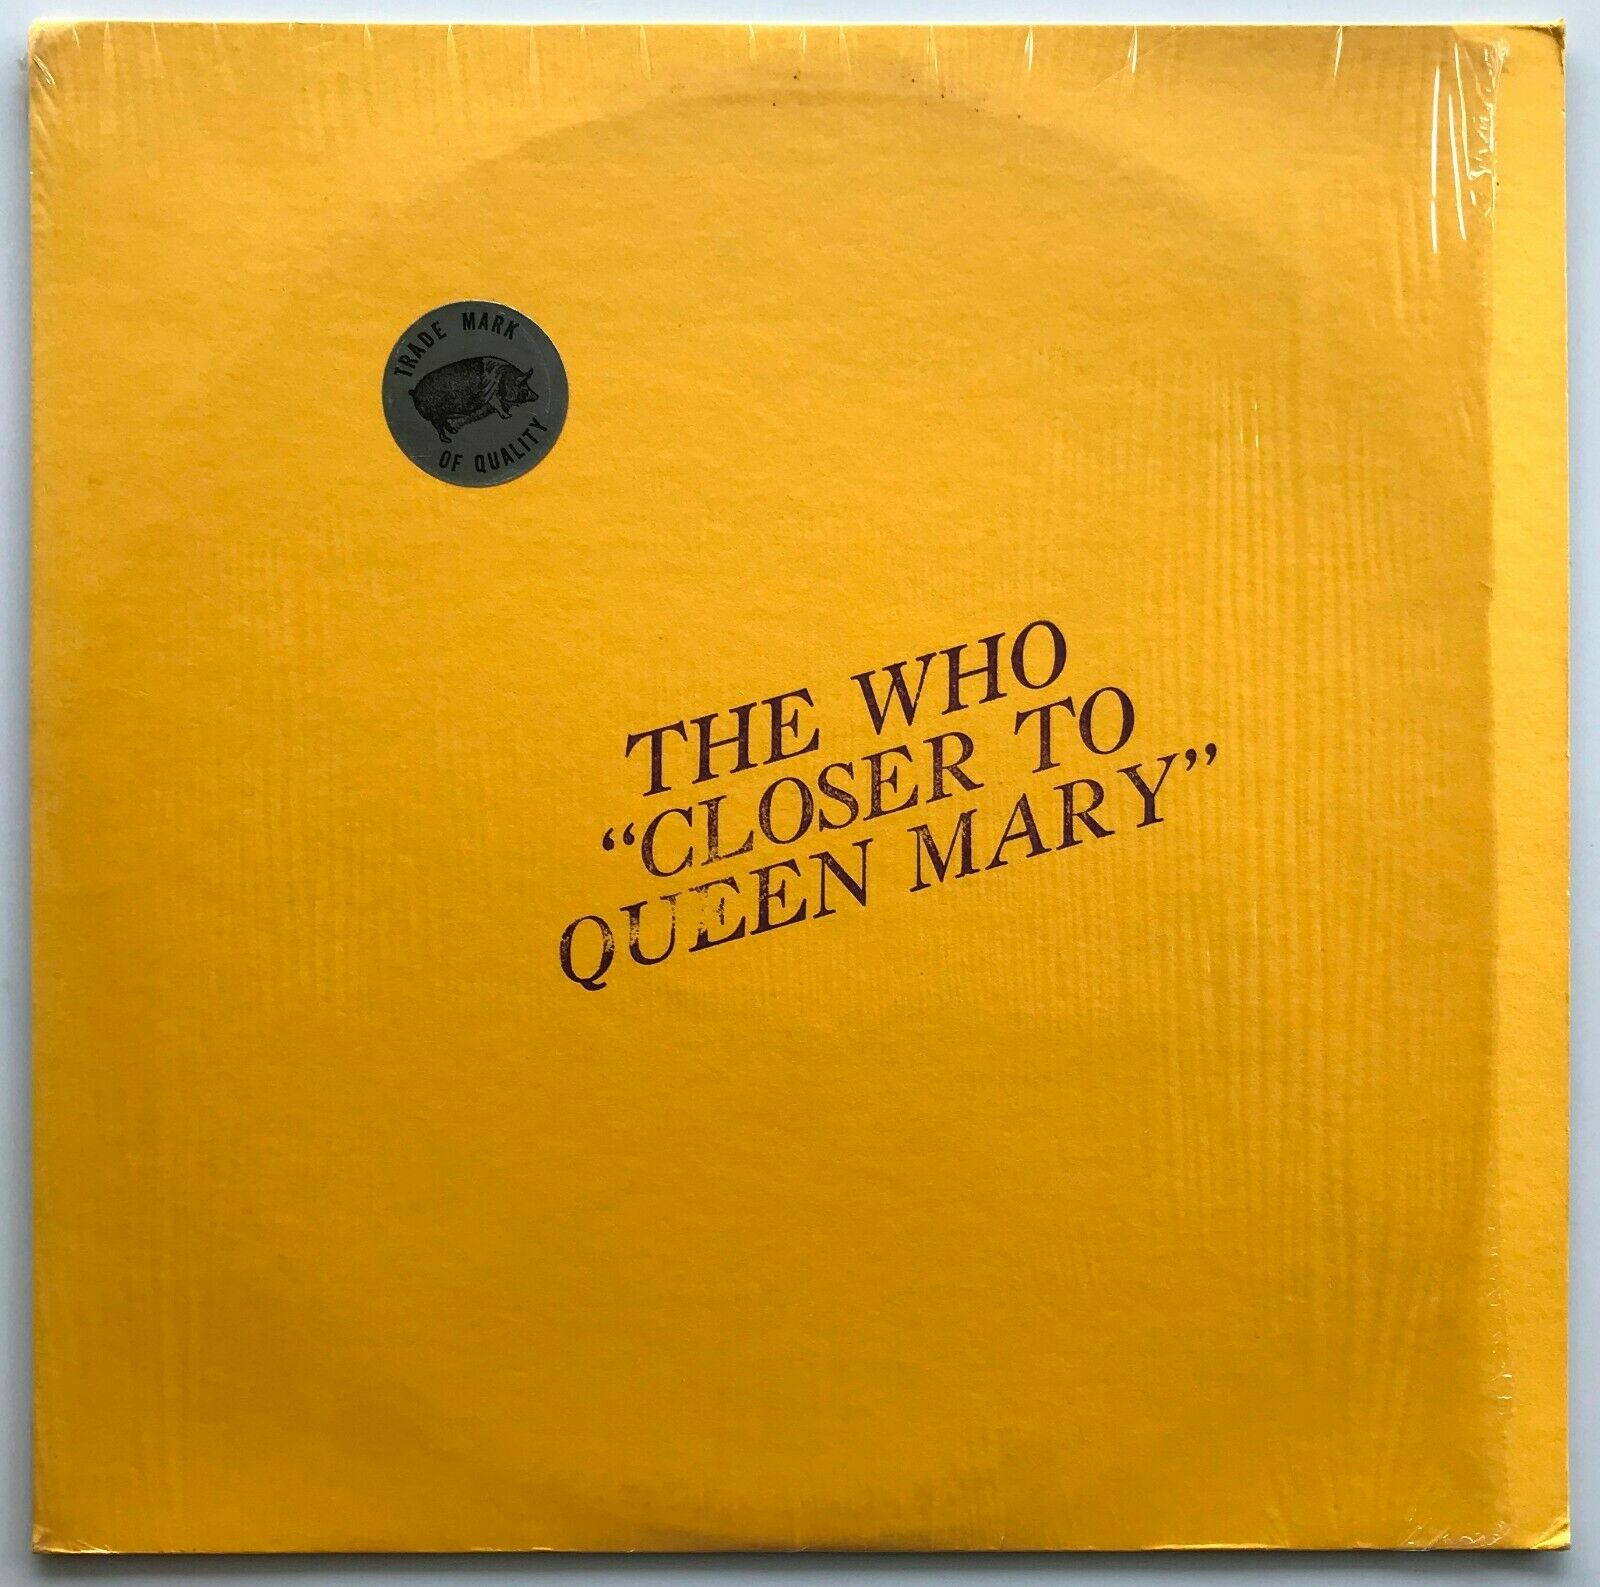 THE WHO Closer To Queen Mary LP Original Red Vinyl TMOQ